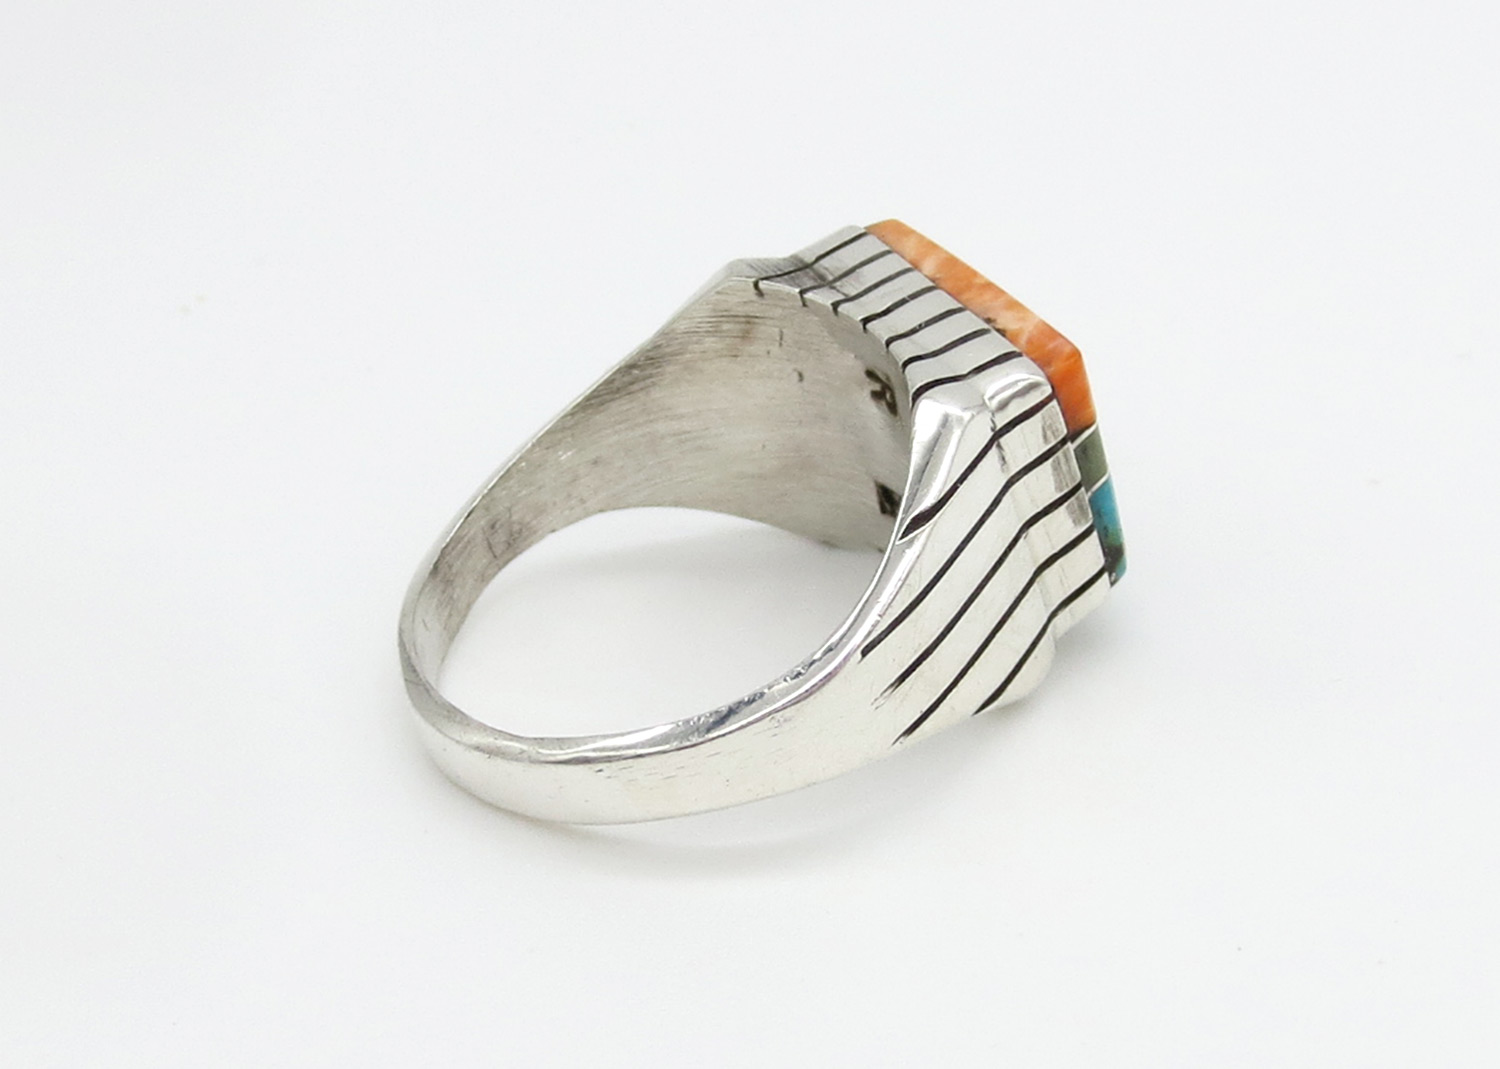 Image 1 of   Multi Stone Inlay & Sterling Silver Unisex Ring Sz 12 - Trevor Jack - 2143rb